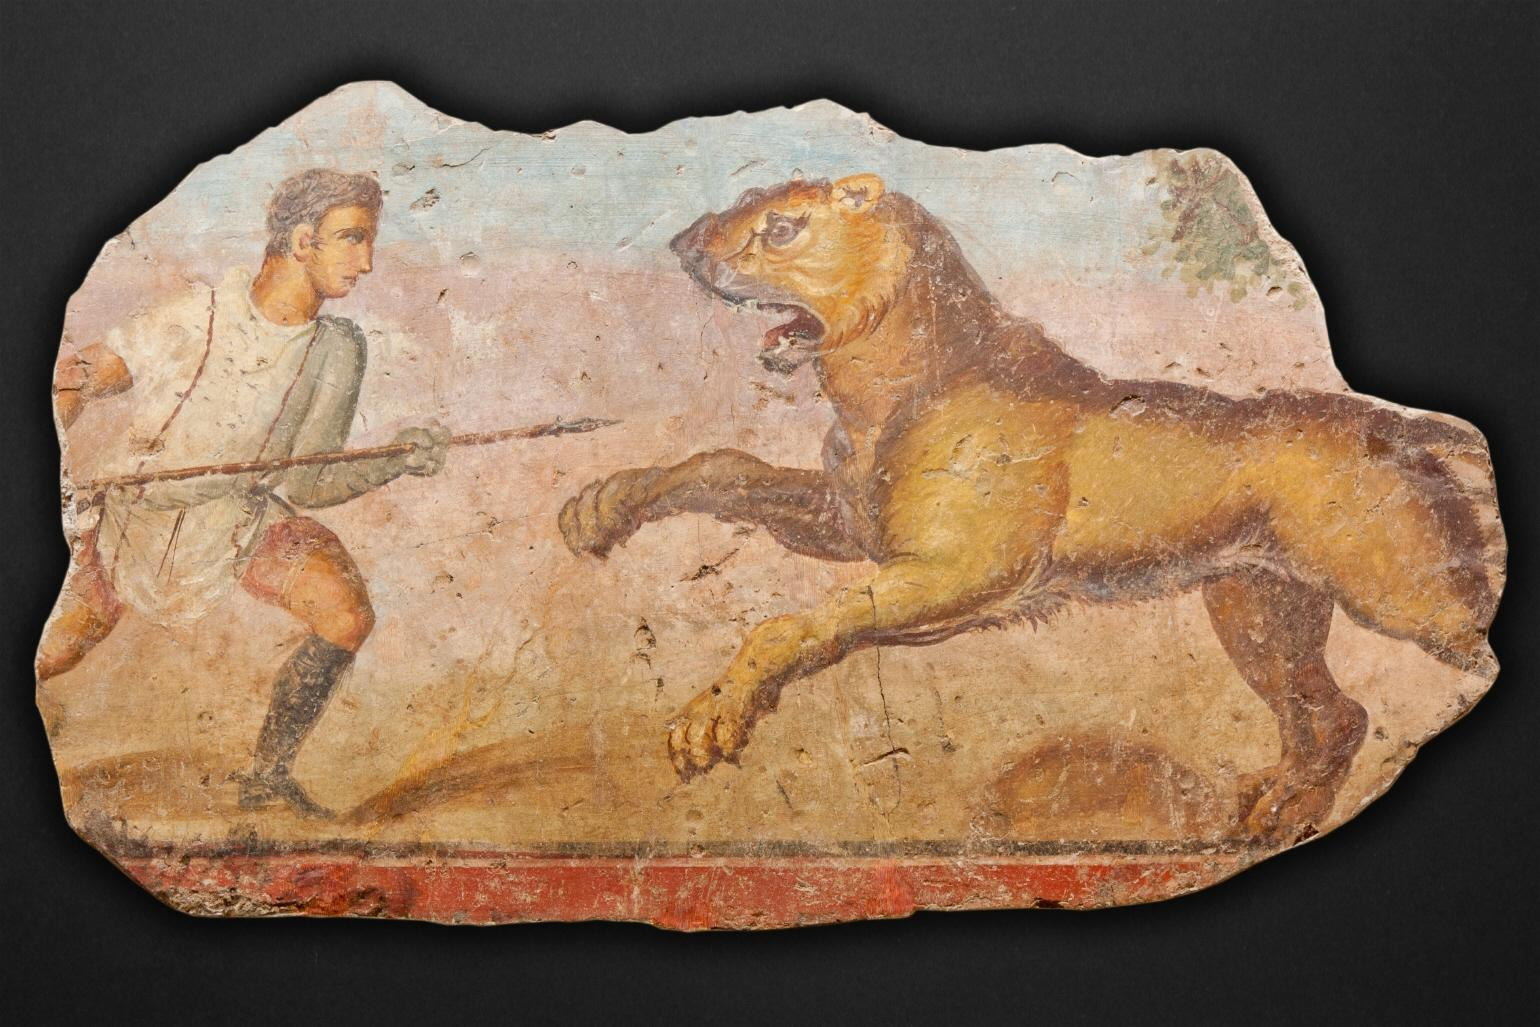 Ancient roman games as a killing machine for wild animals | Short